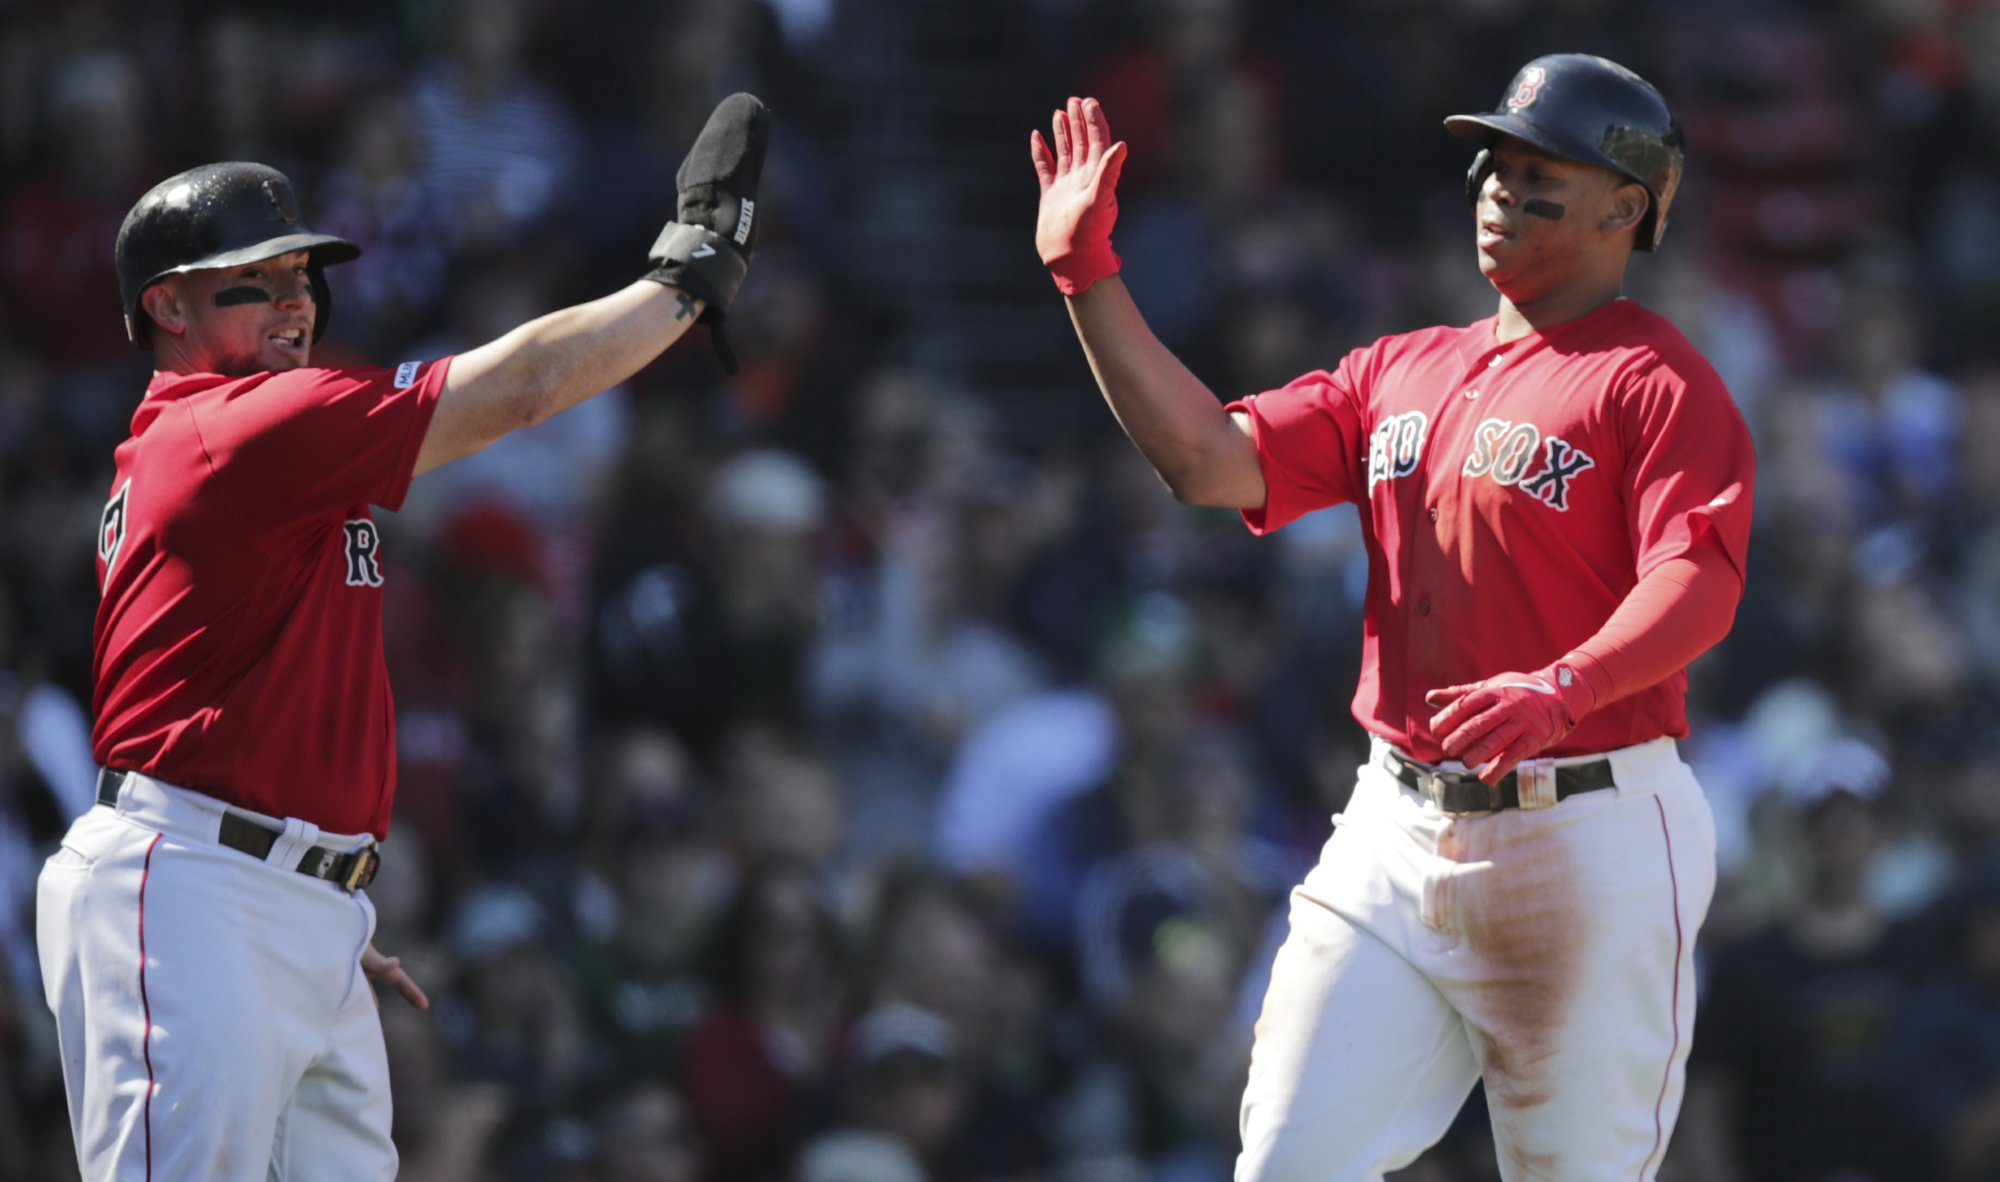 Rodriguez, Red Sox beat Giants 5-4 to avoid sweep